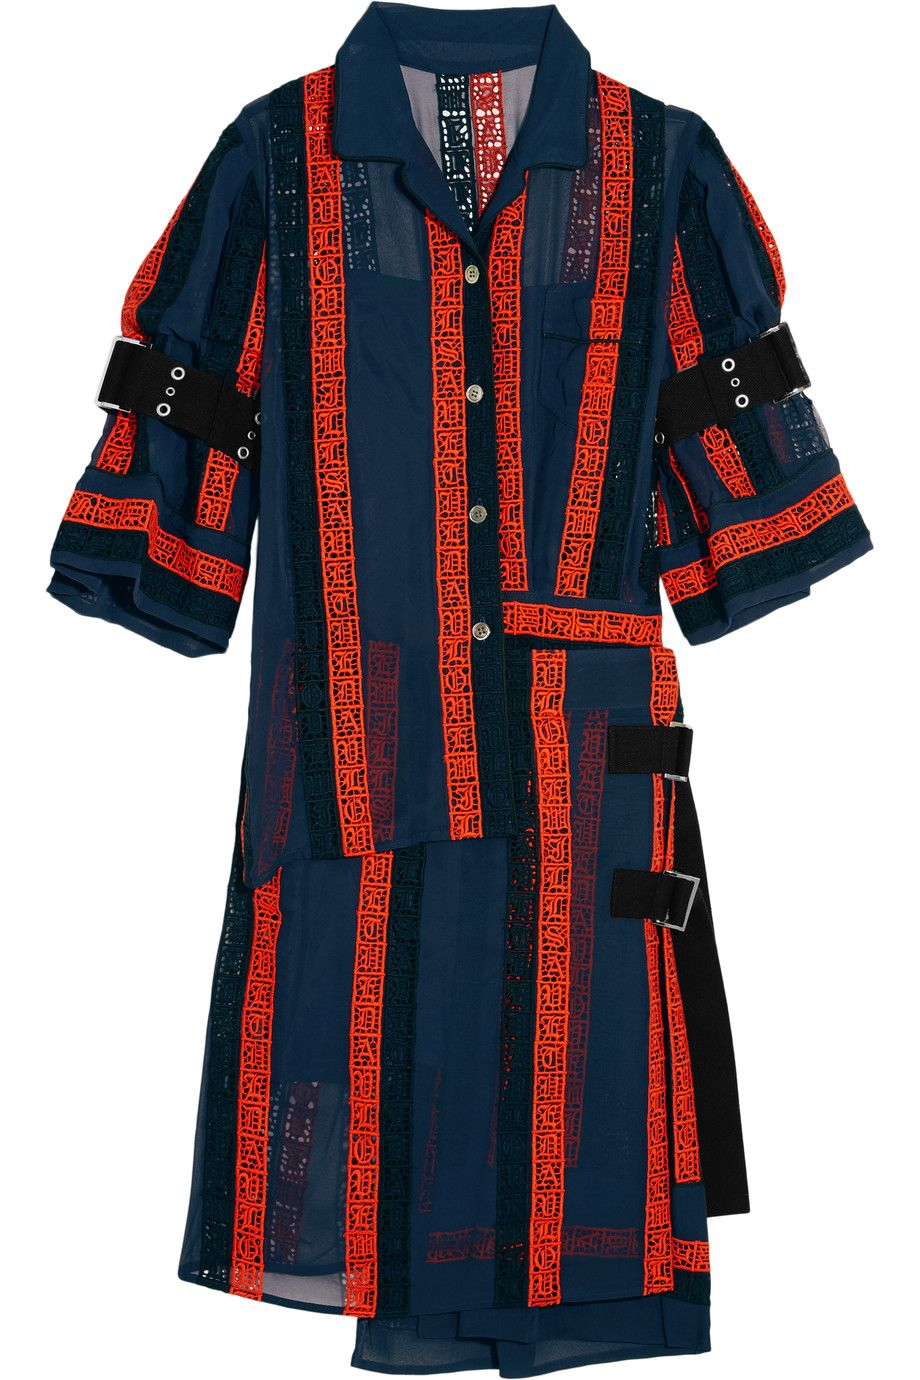 Navy · SACAI Macramé Lace-Paneled Cotton-Blend Chiffon Dress.